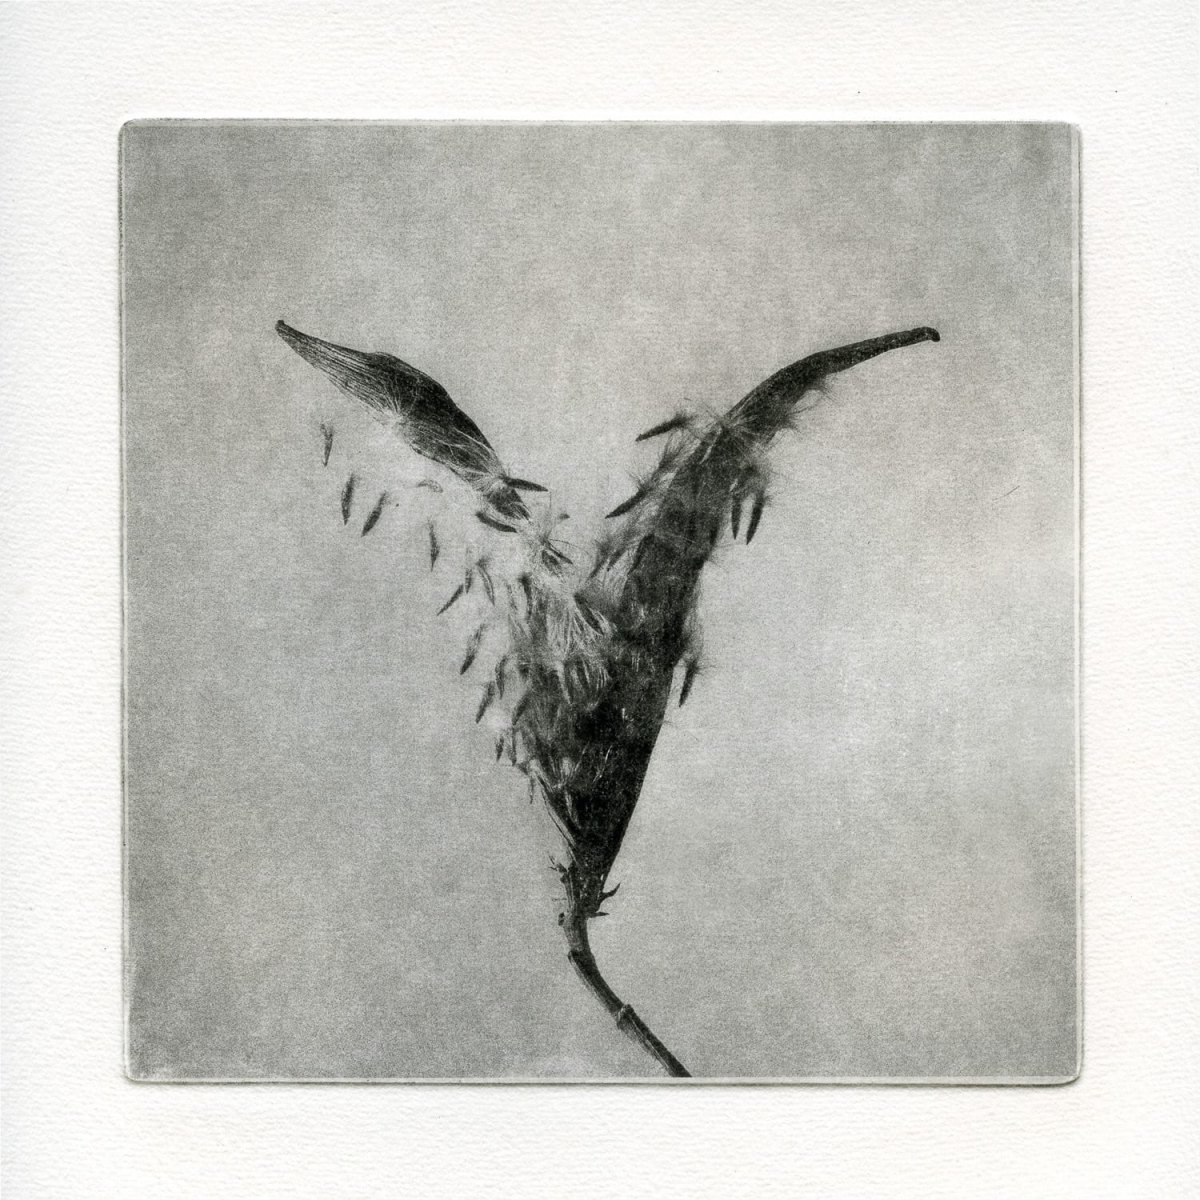 """Grana: 5400,"" 2019. Copperplate Photogravure"